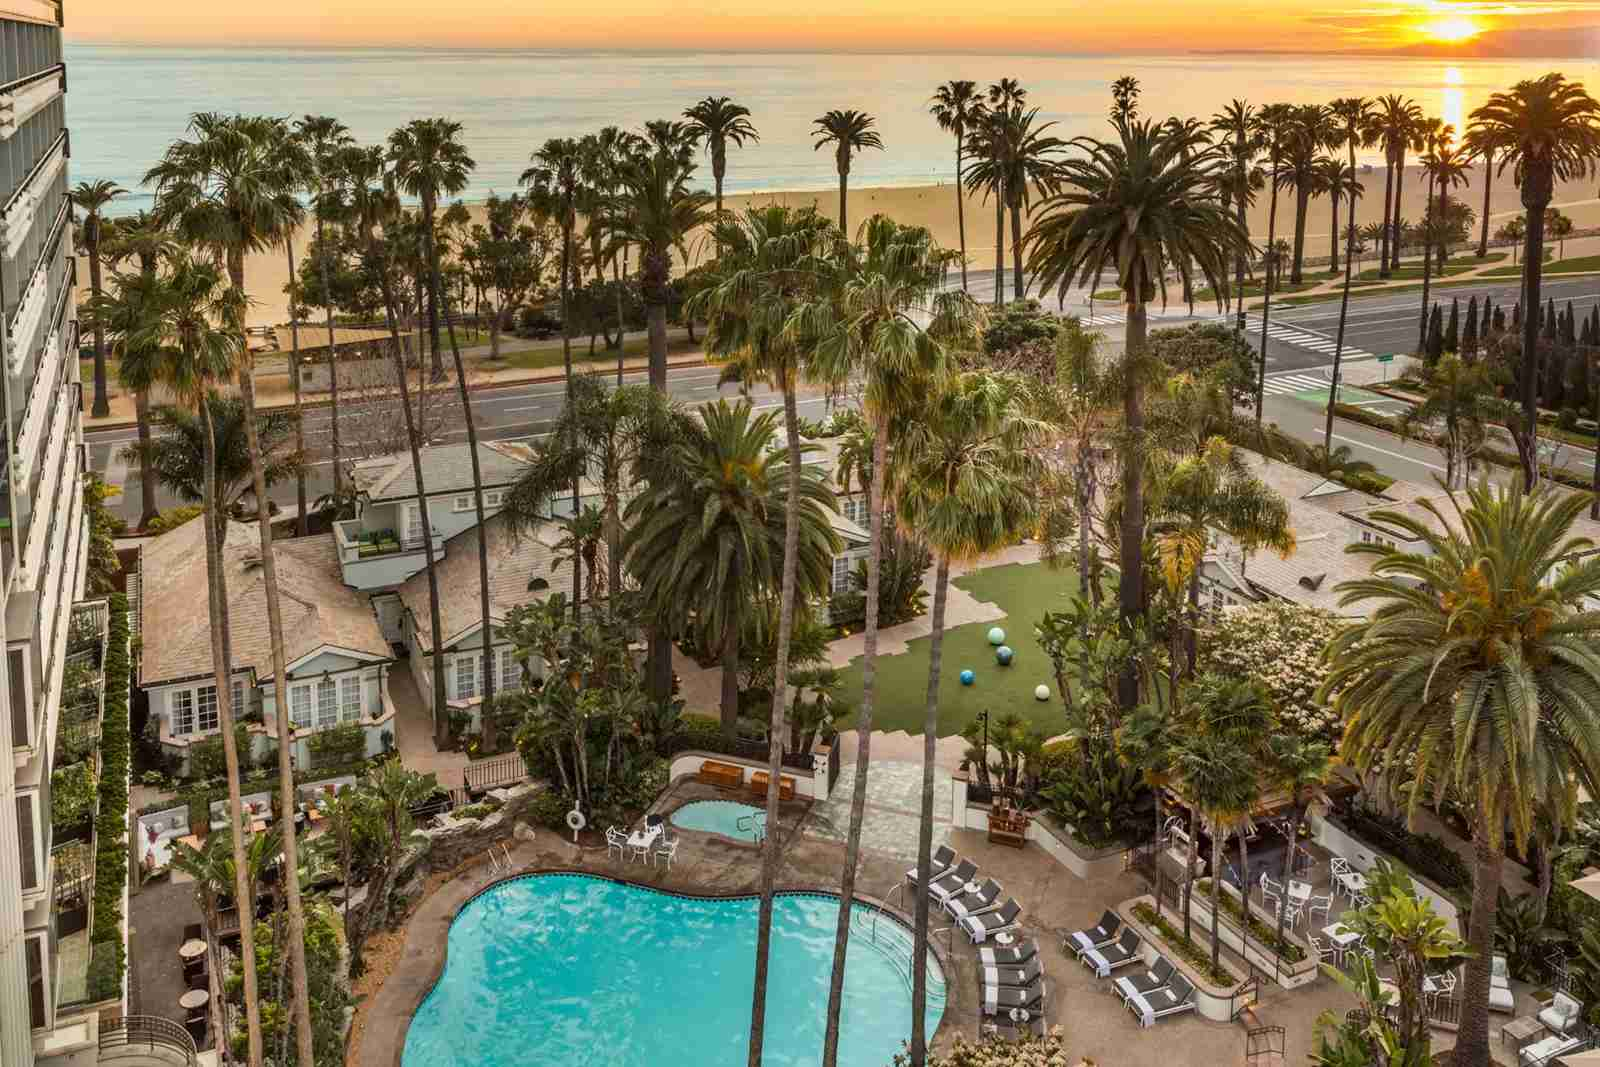 The Fairmont Miramar Hotel and Bungalows, Santa Monica. (Photo courtesy of Fairmont Hotels/Facebook)